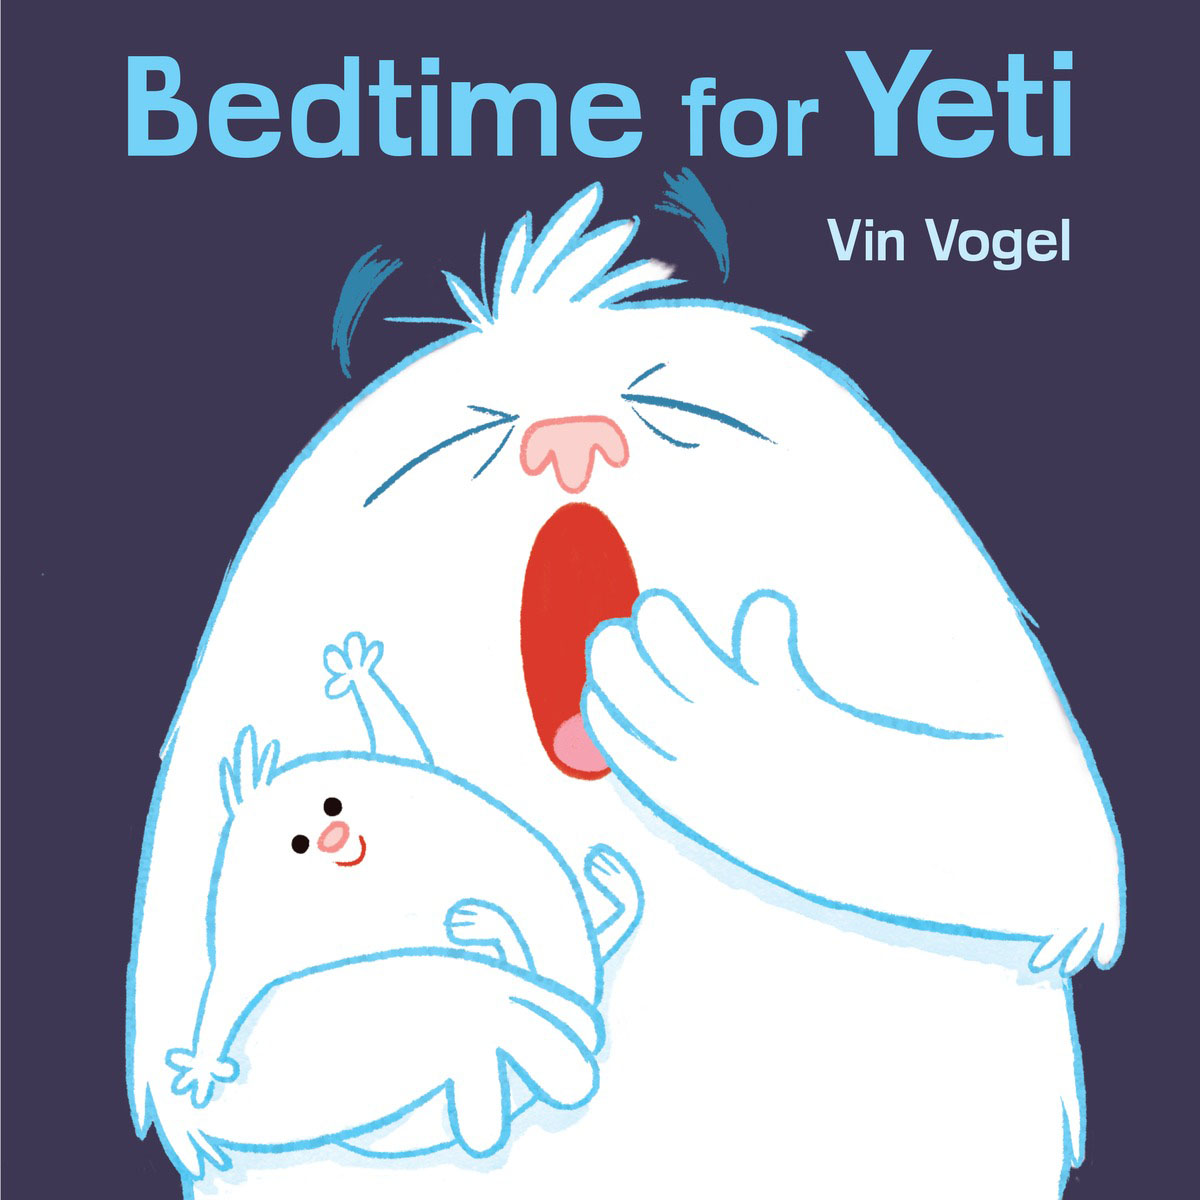 Bedtime for Yeti the summons